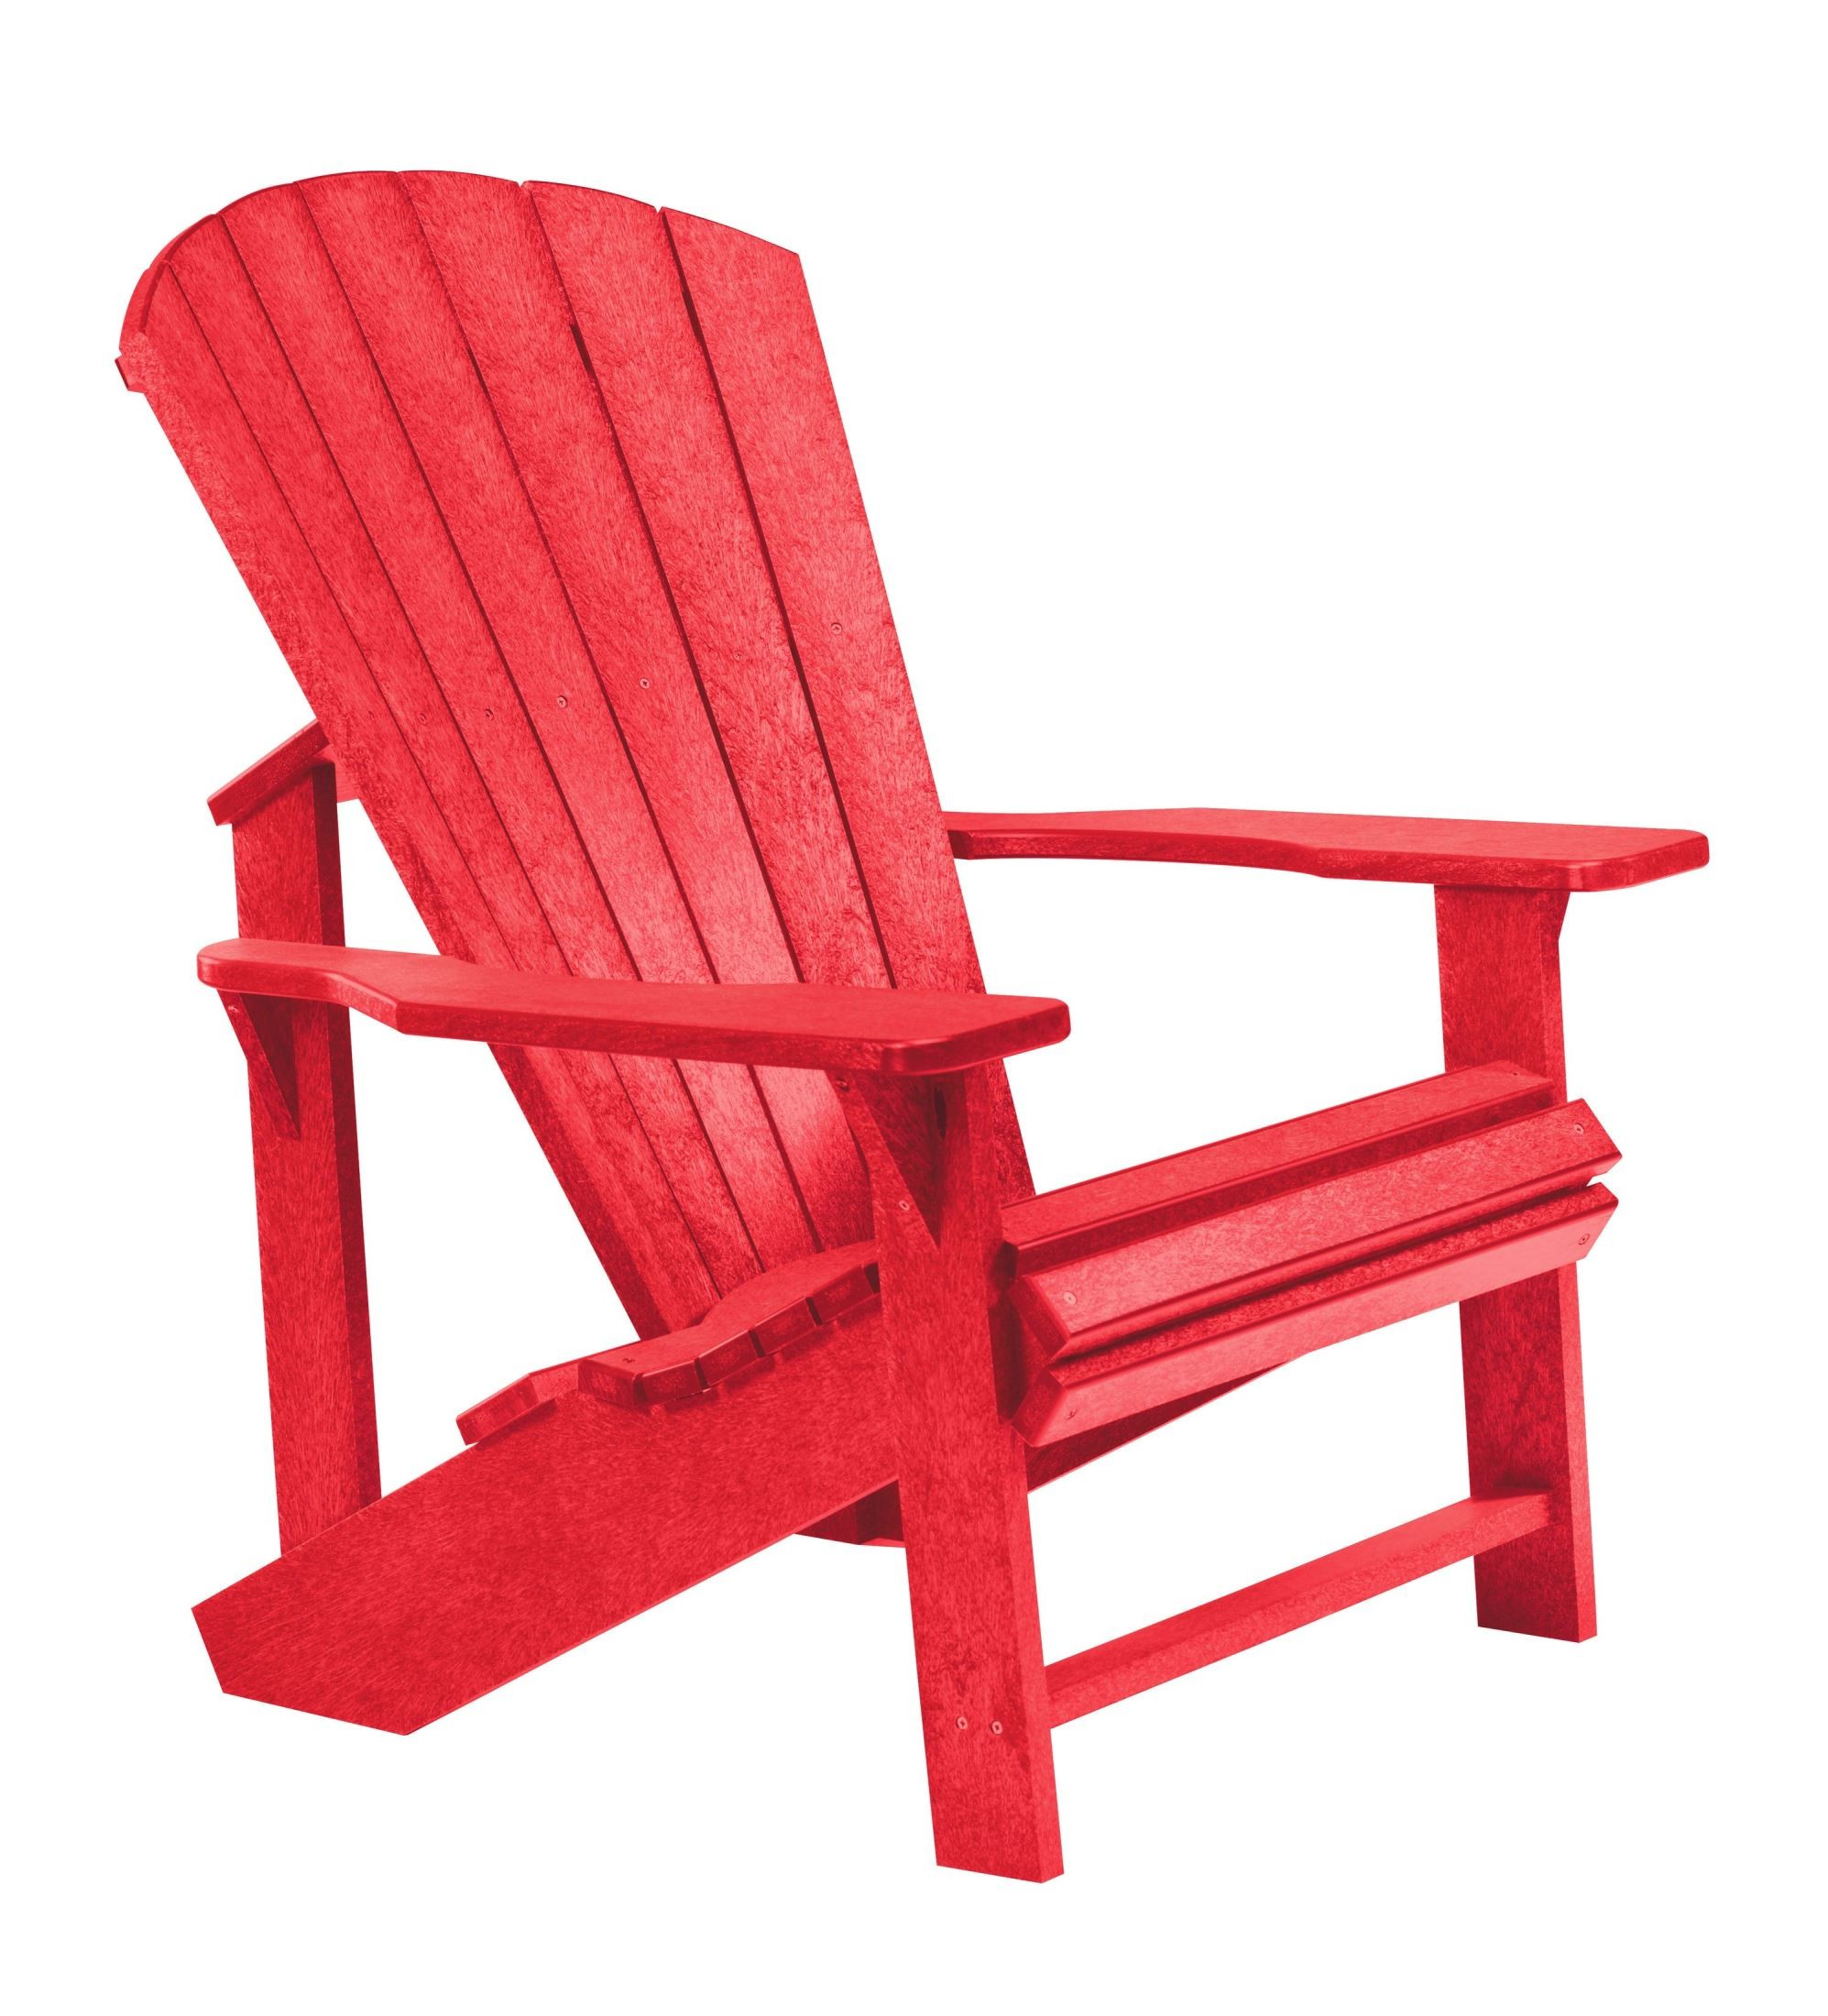 Generations Red Adirondack Chair From Cr Plastic C01 01